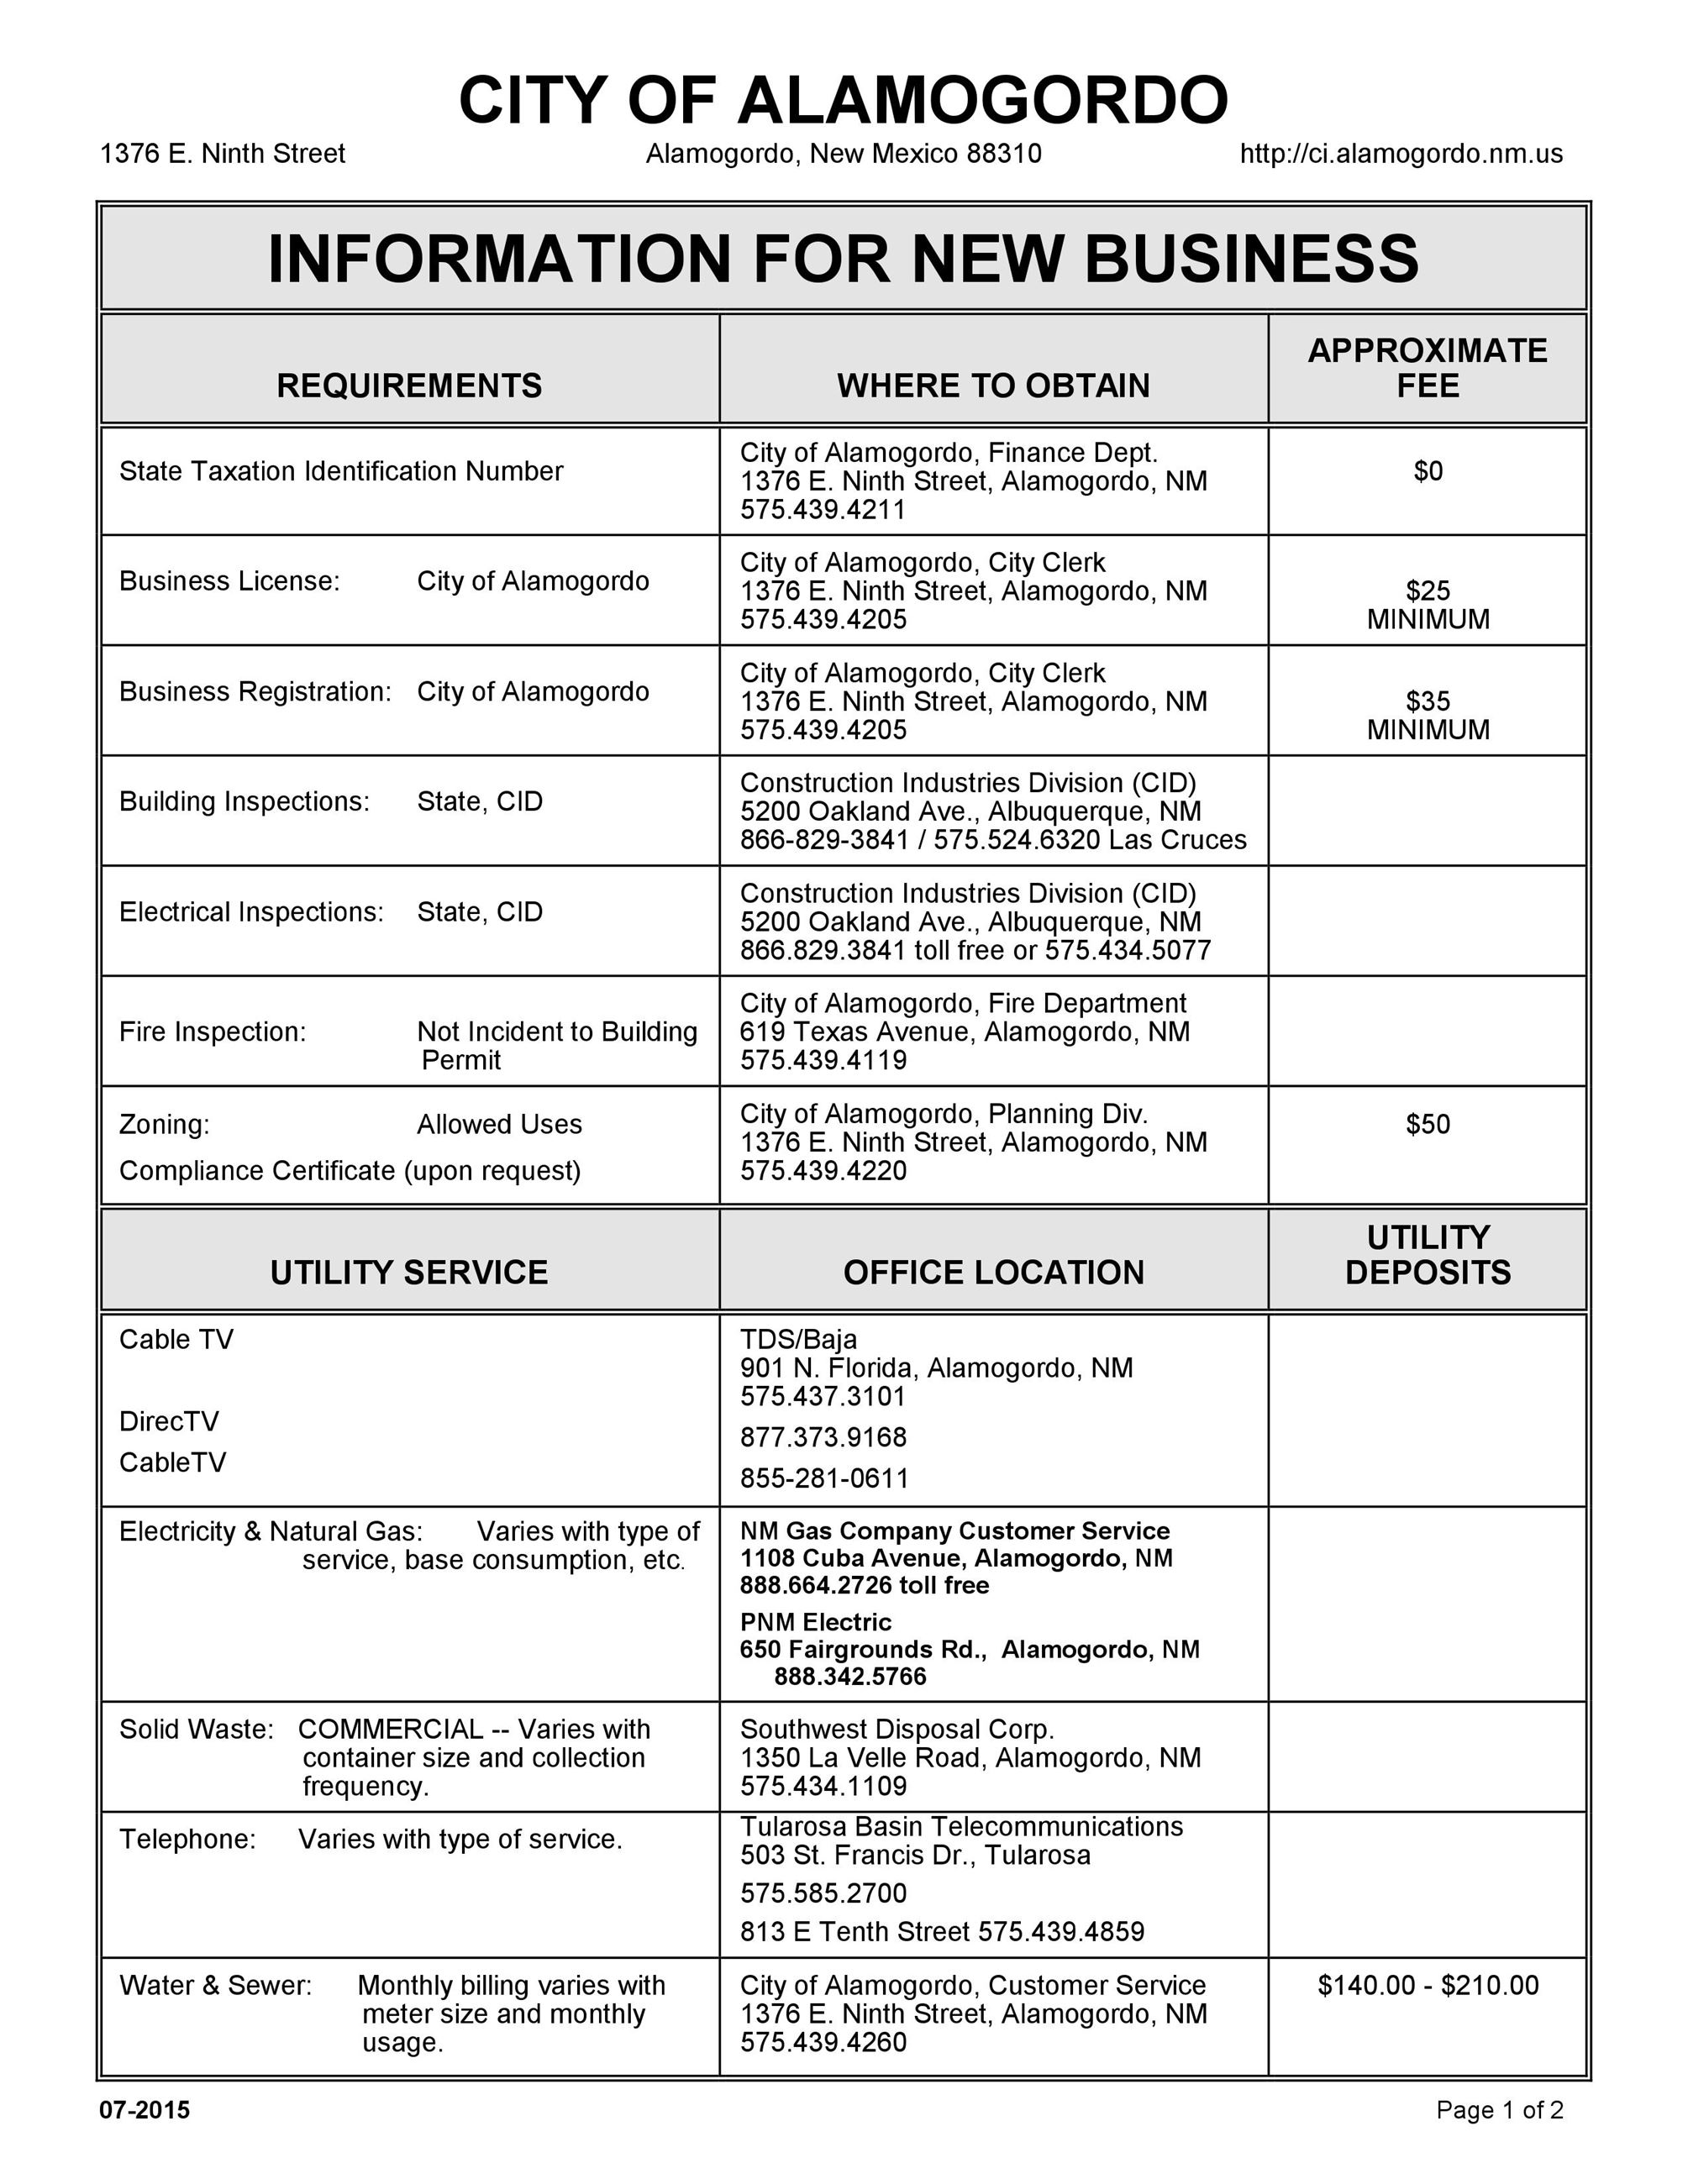 Information for New Business, Requirements, Where to obtain, Fees